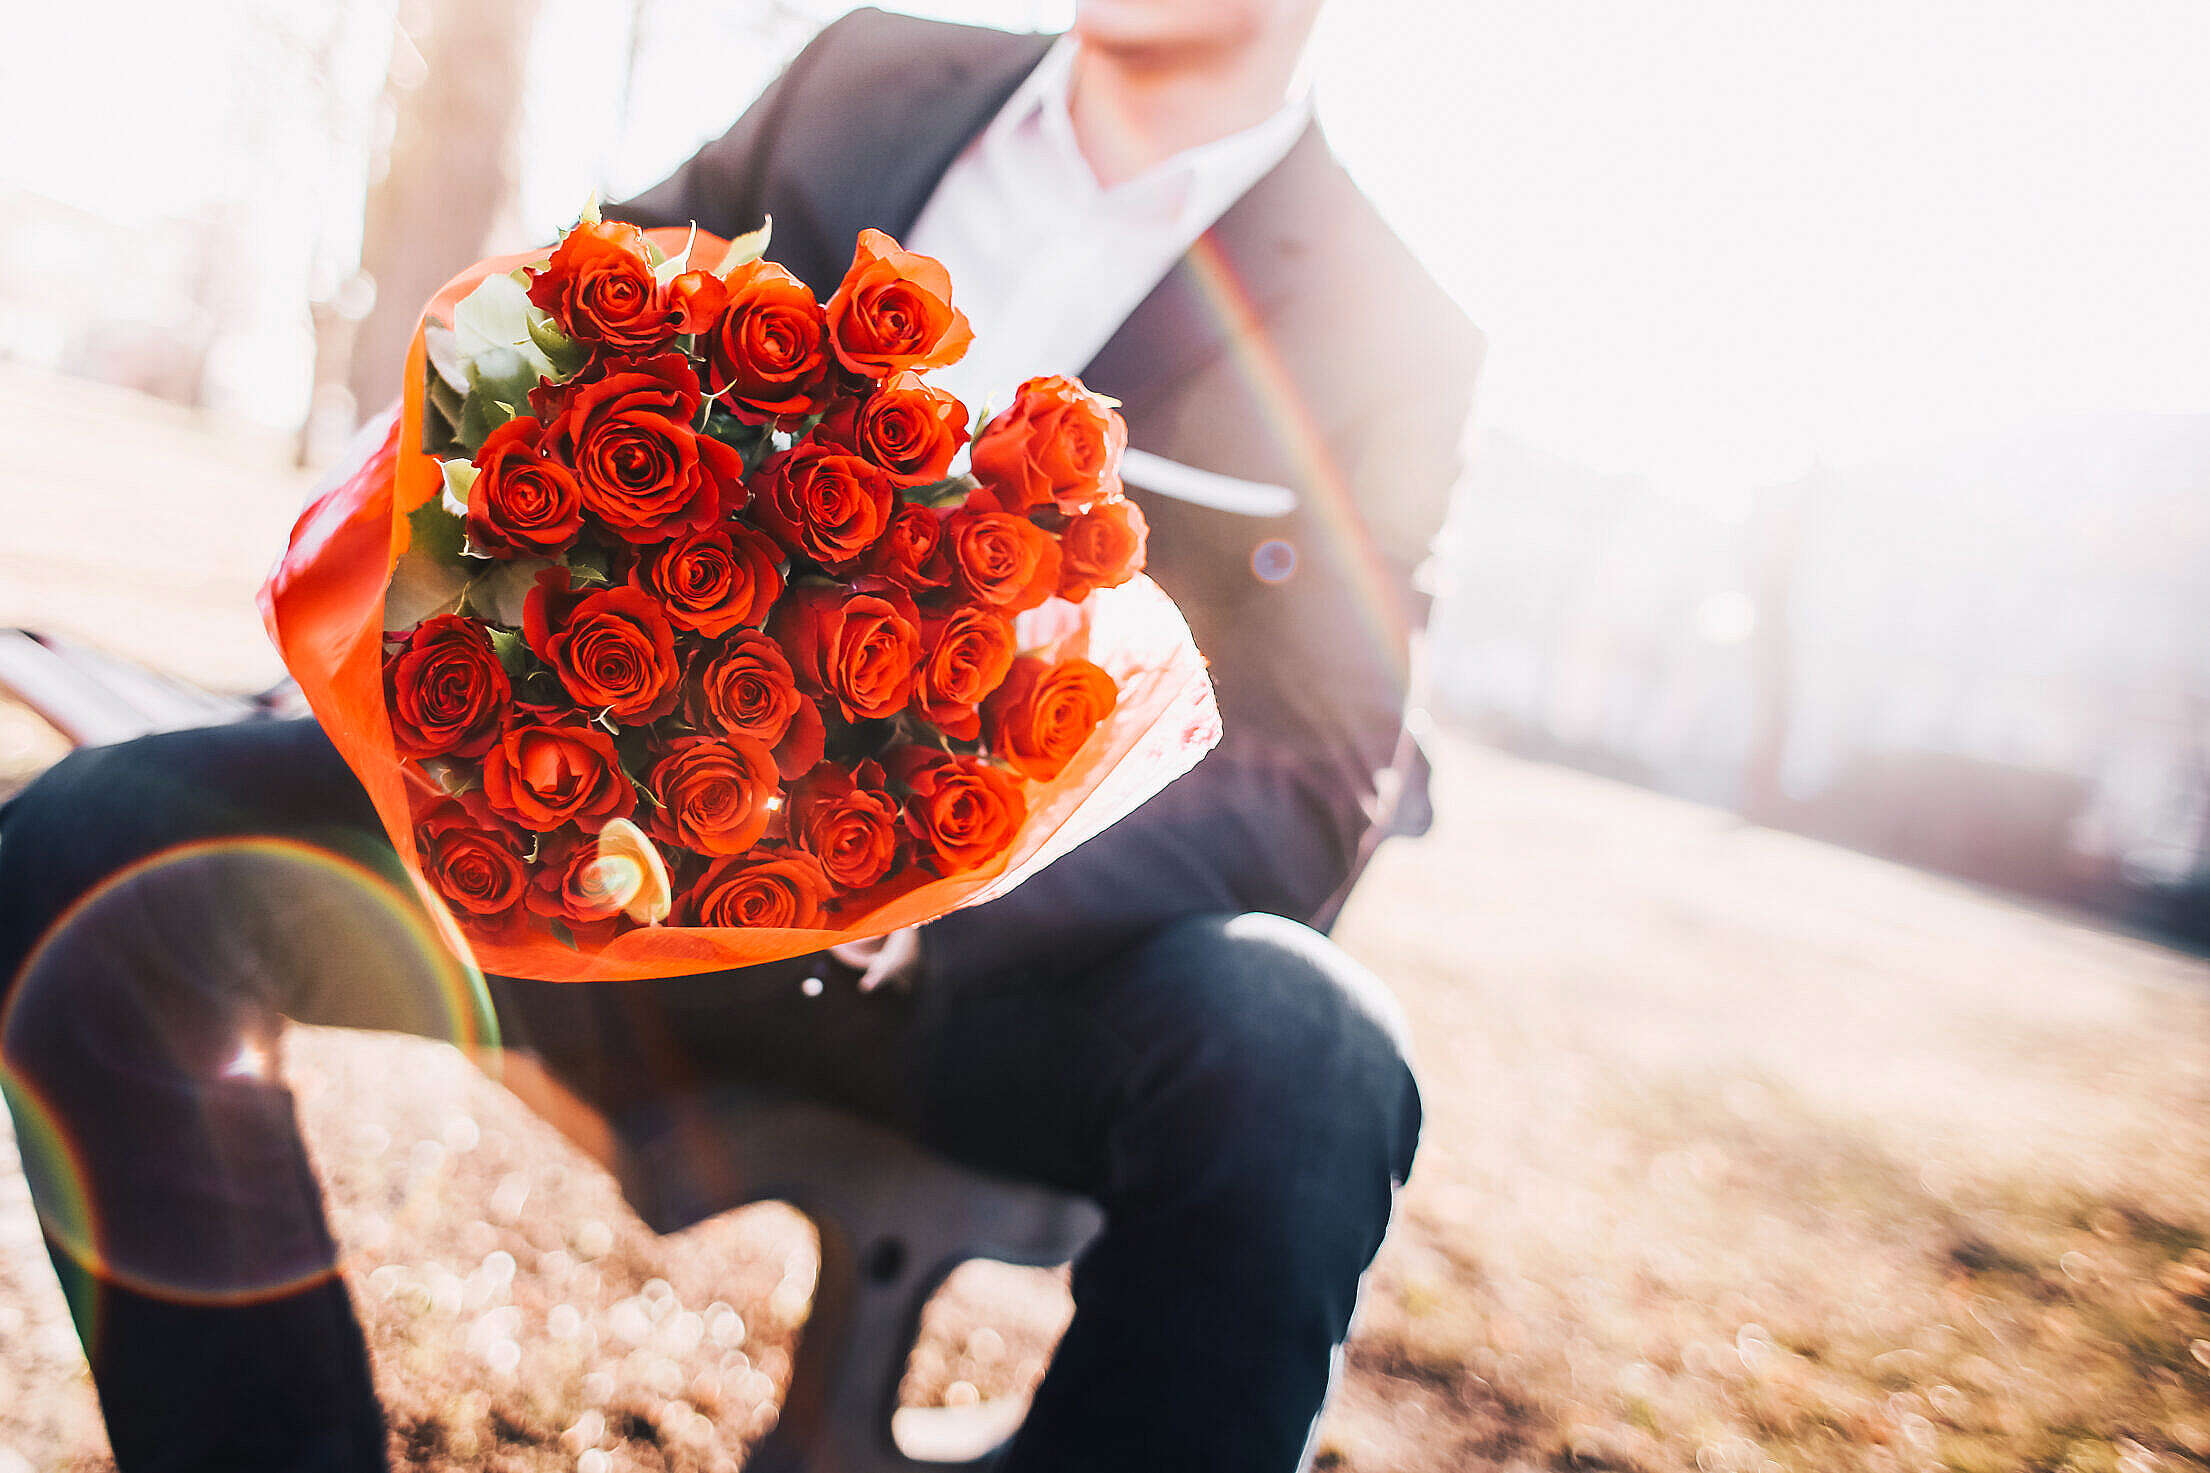 Man Holding a Bouquet of Red Roses Free Stock Photo